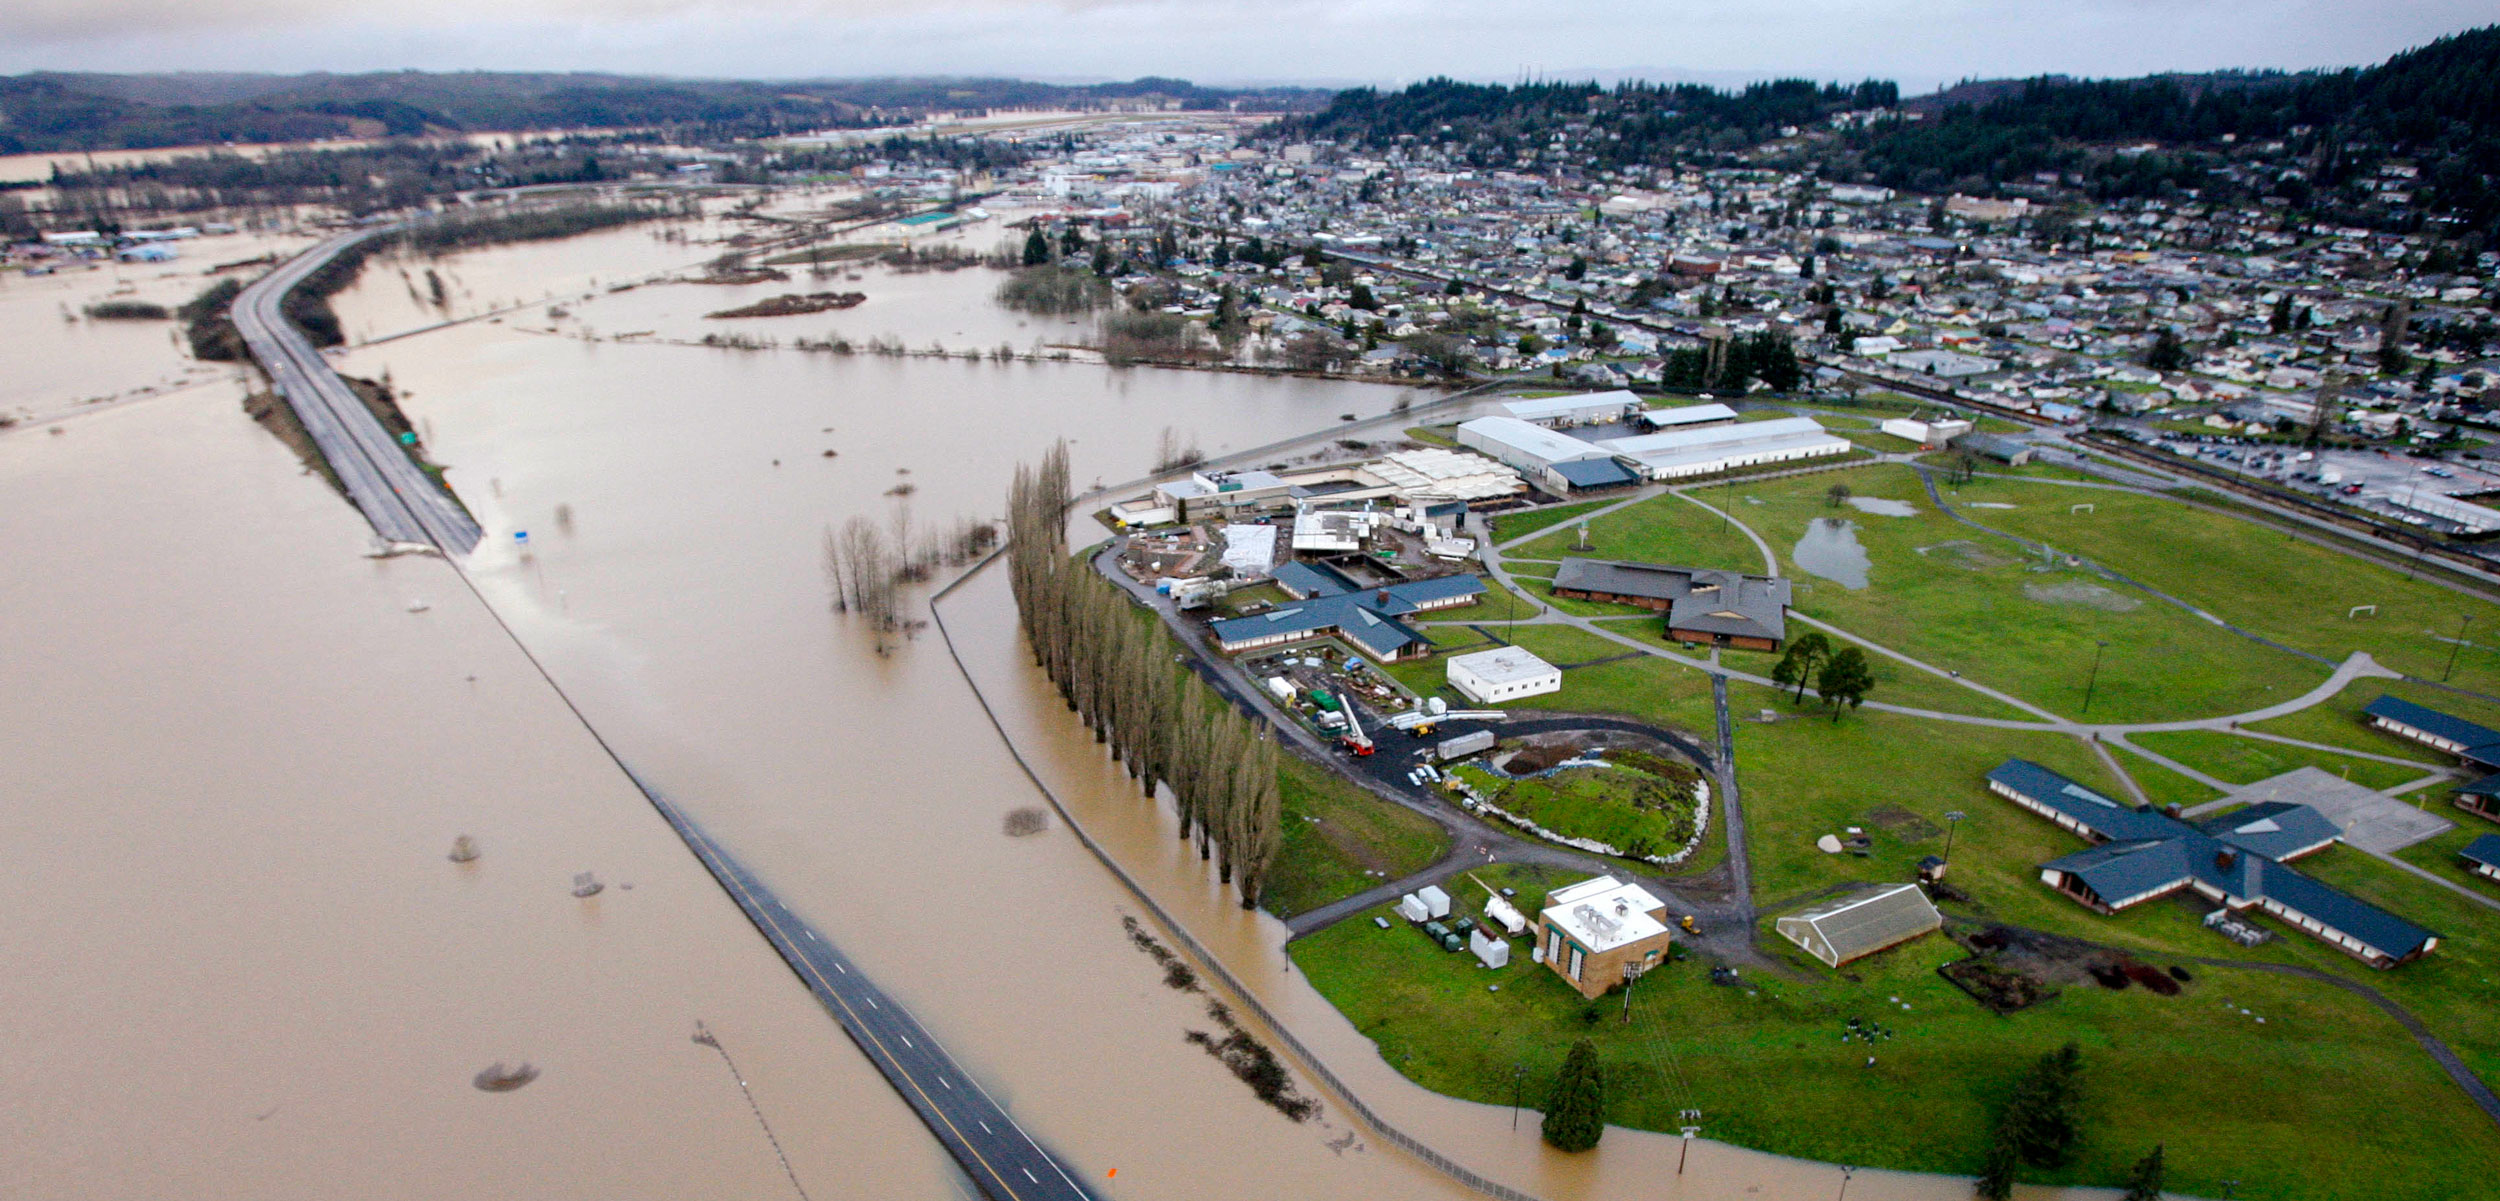 aerial view of 2009 flooding in Washington State